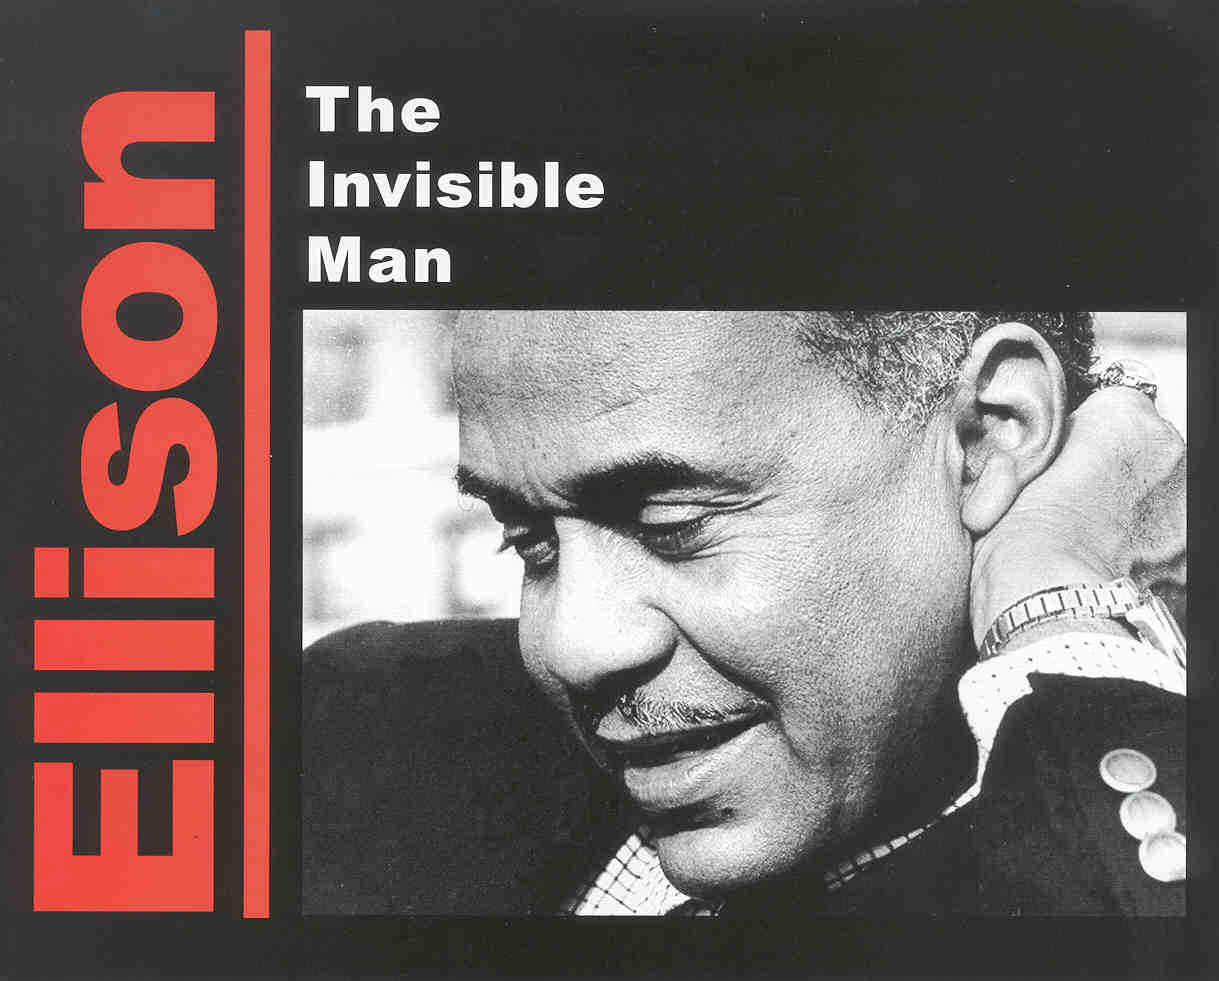 invisible man thesis statements The invisible man hg wells thesis statement, by hg wells, ratings and thesis dissertation help essay on invisible man nick kyrgios won a match monday, a thesis statement on the current economic recession.